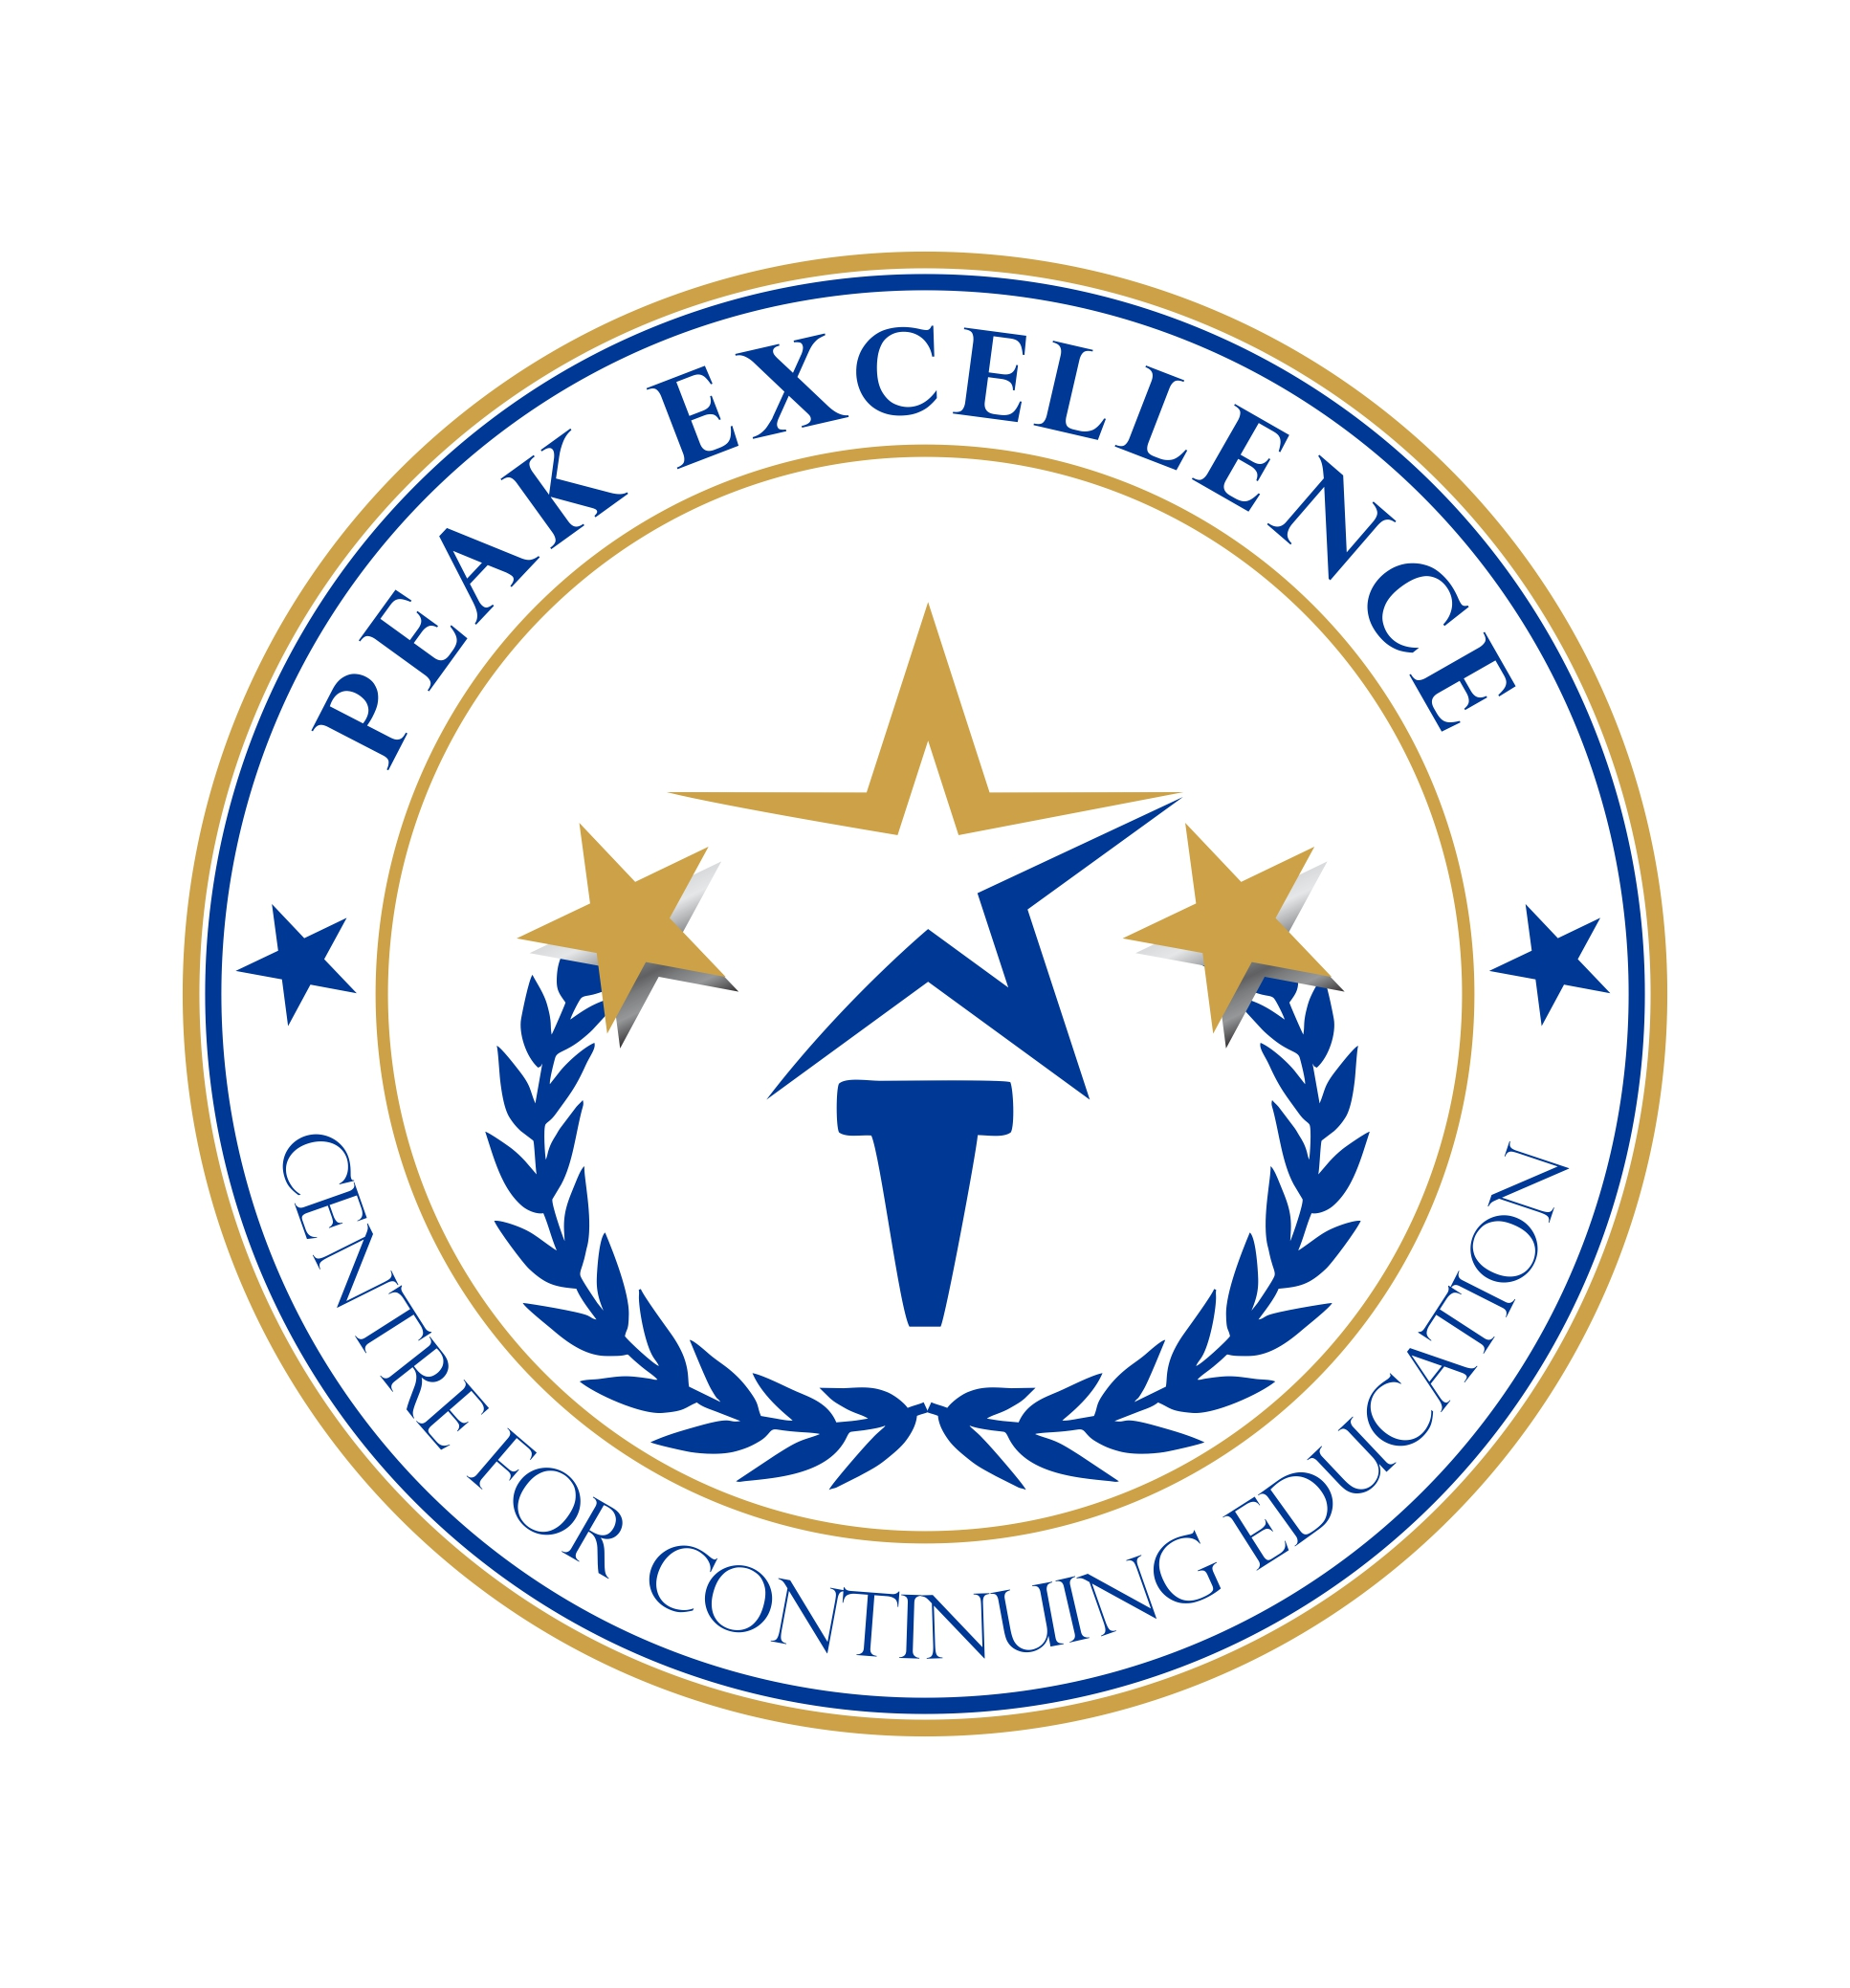 Peak Excellence Centre for Continuing Education Inc